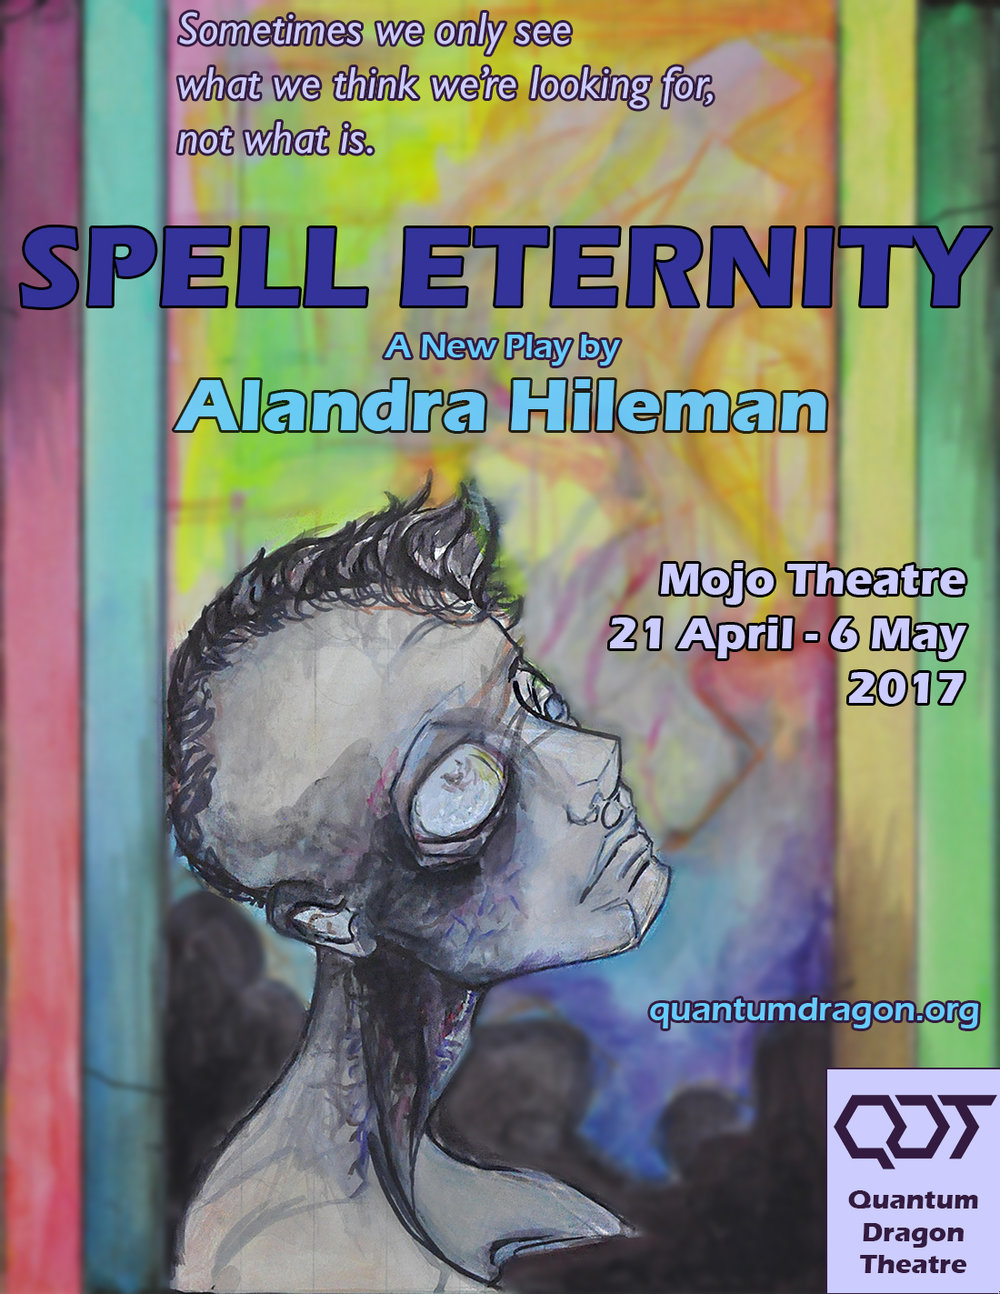 Spell Eternity - By Alandra HilemanDirected by Sam TillisDECEMBER 1st—9th, 2017The Mojo Theatre2940 16th St, SF